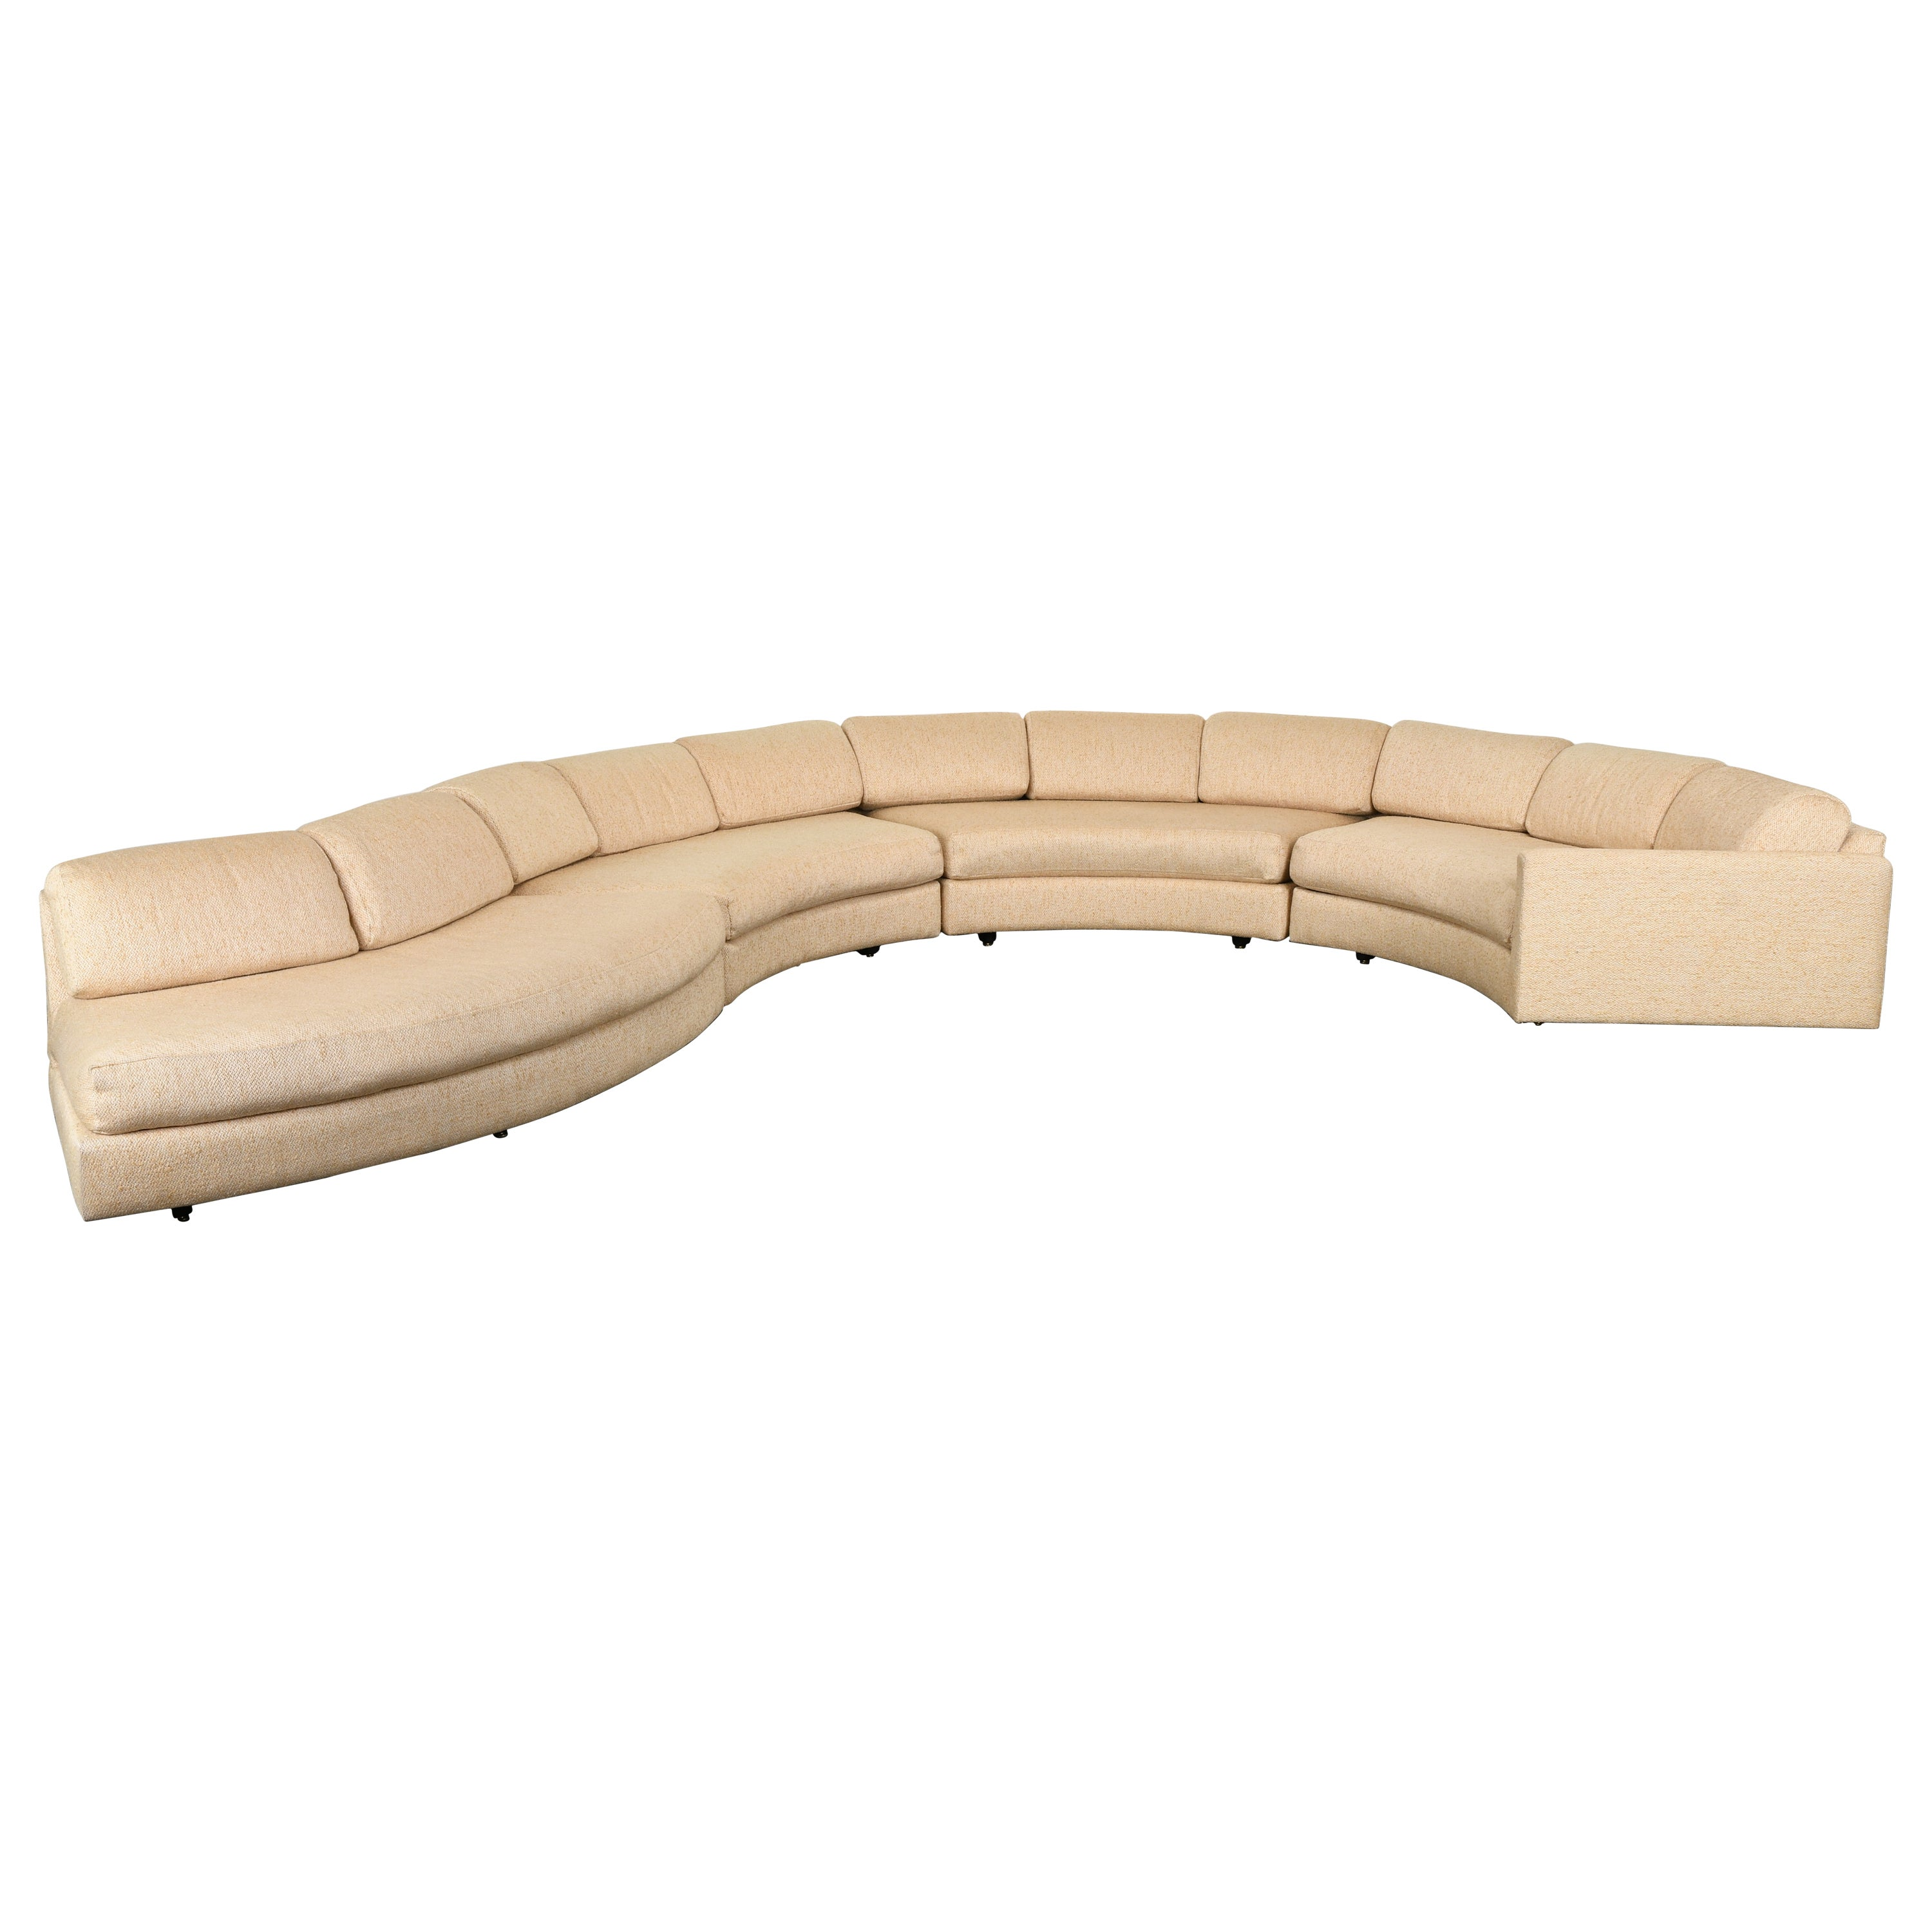 Monumental Adrian Pearsall Sectional Sofa for Craft Associates, 1960s